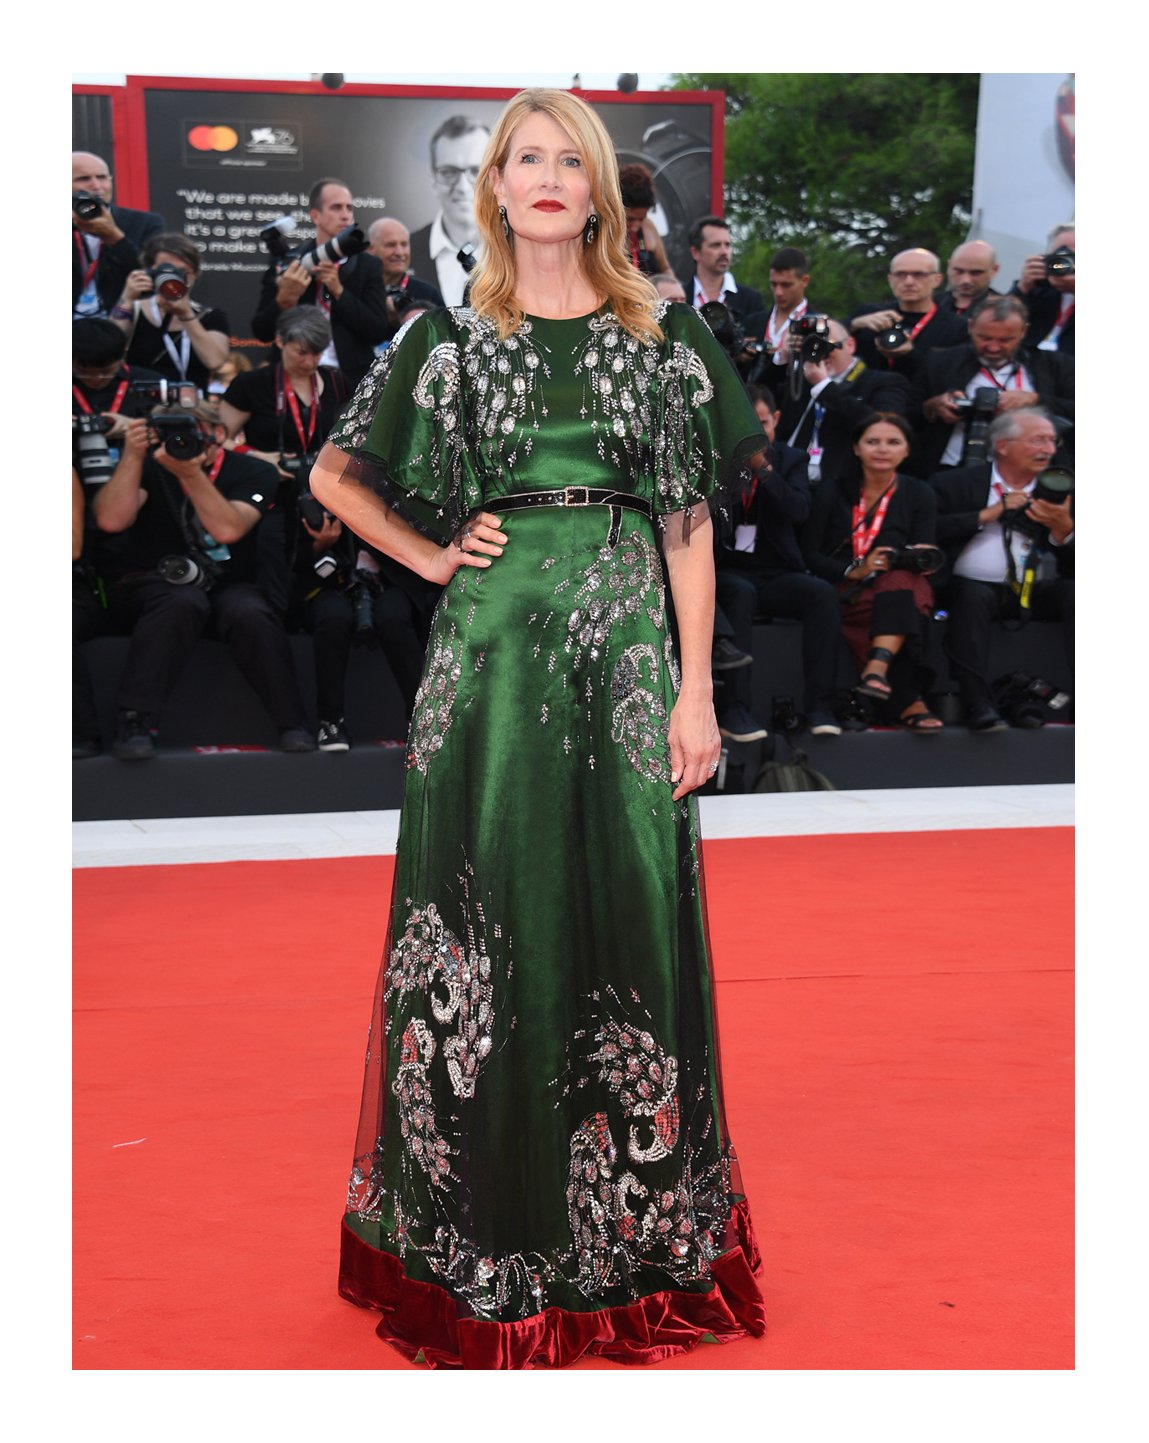 To the 76th Venice Film Festival, @LauraDern attended the premiere of 'Marriage Story' in a silk gown with sequin and crystal embroidered trompe l'oeil belt and floral appliqués from #GucciCruise19 by #AlessandroMichele. #BiennaleCinema2019 #Venezia76 @la_Biennale #LauraDern https://t.co/qpQG8ILEdf